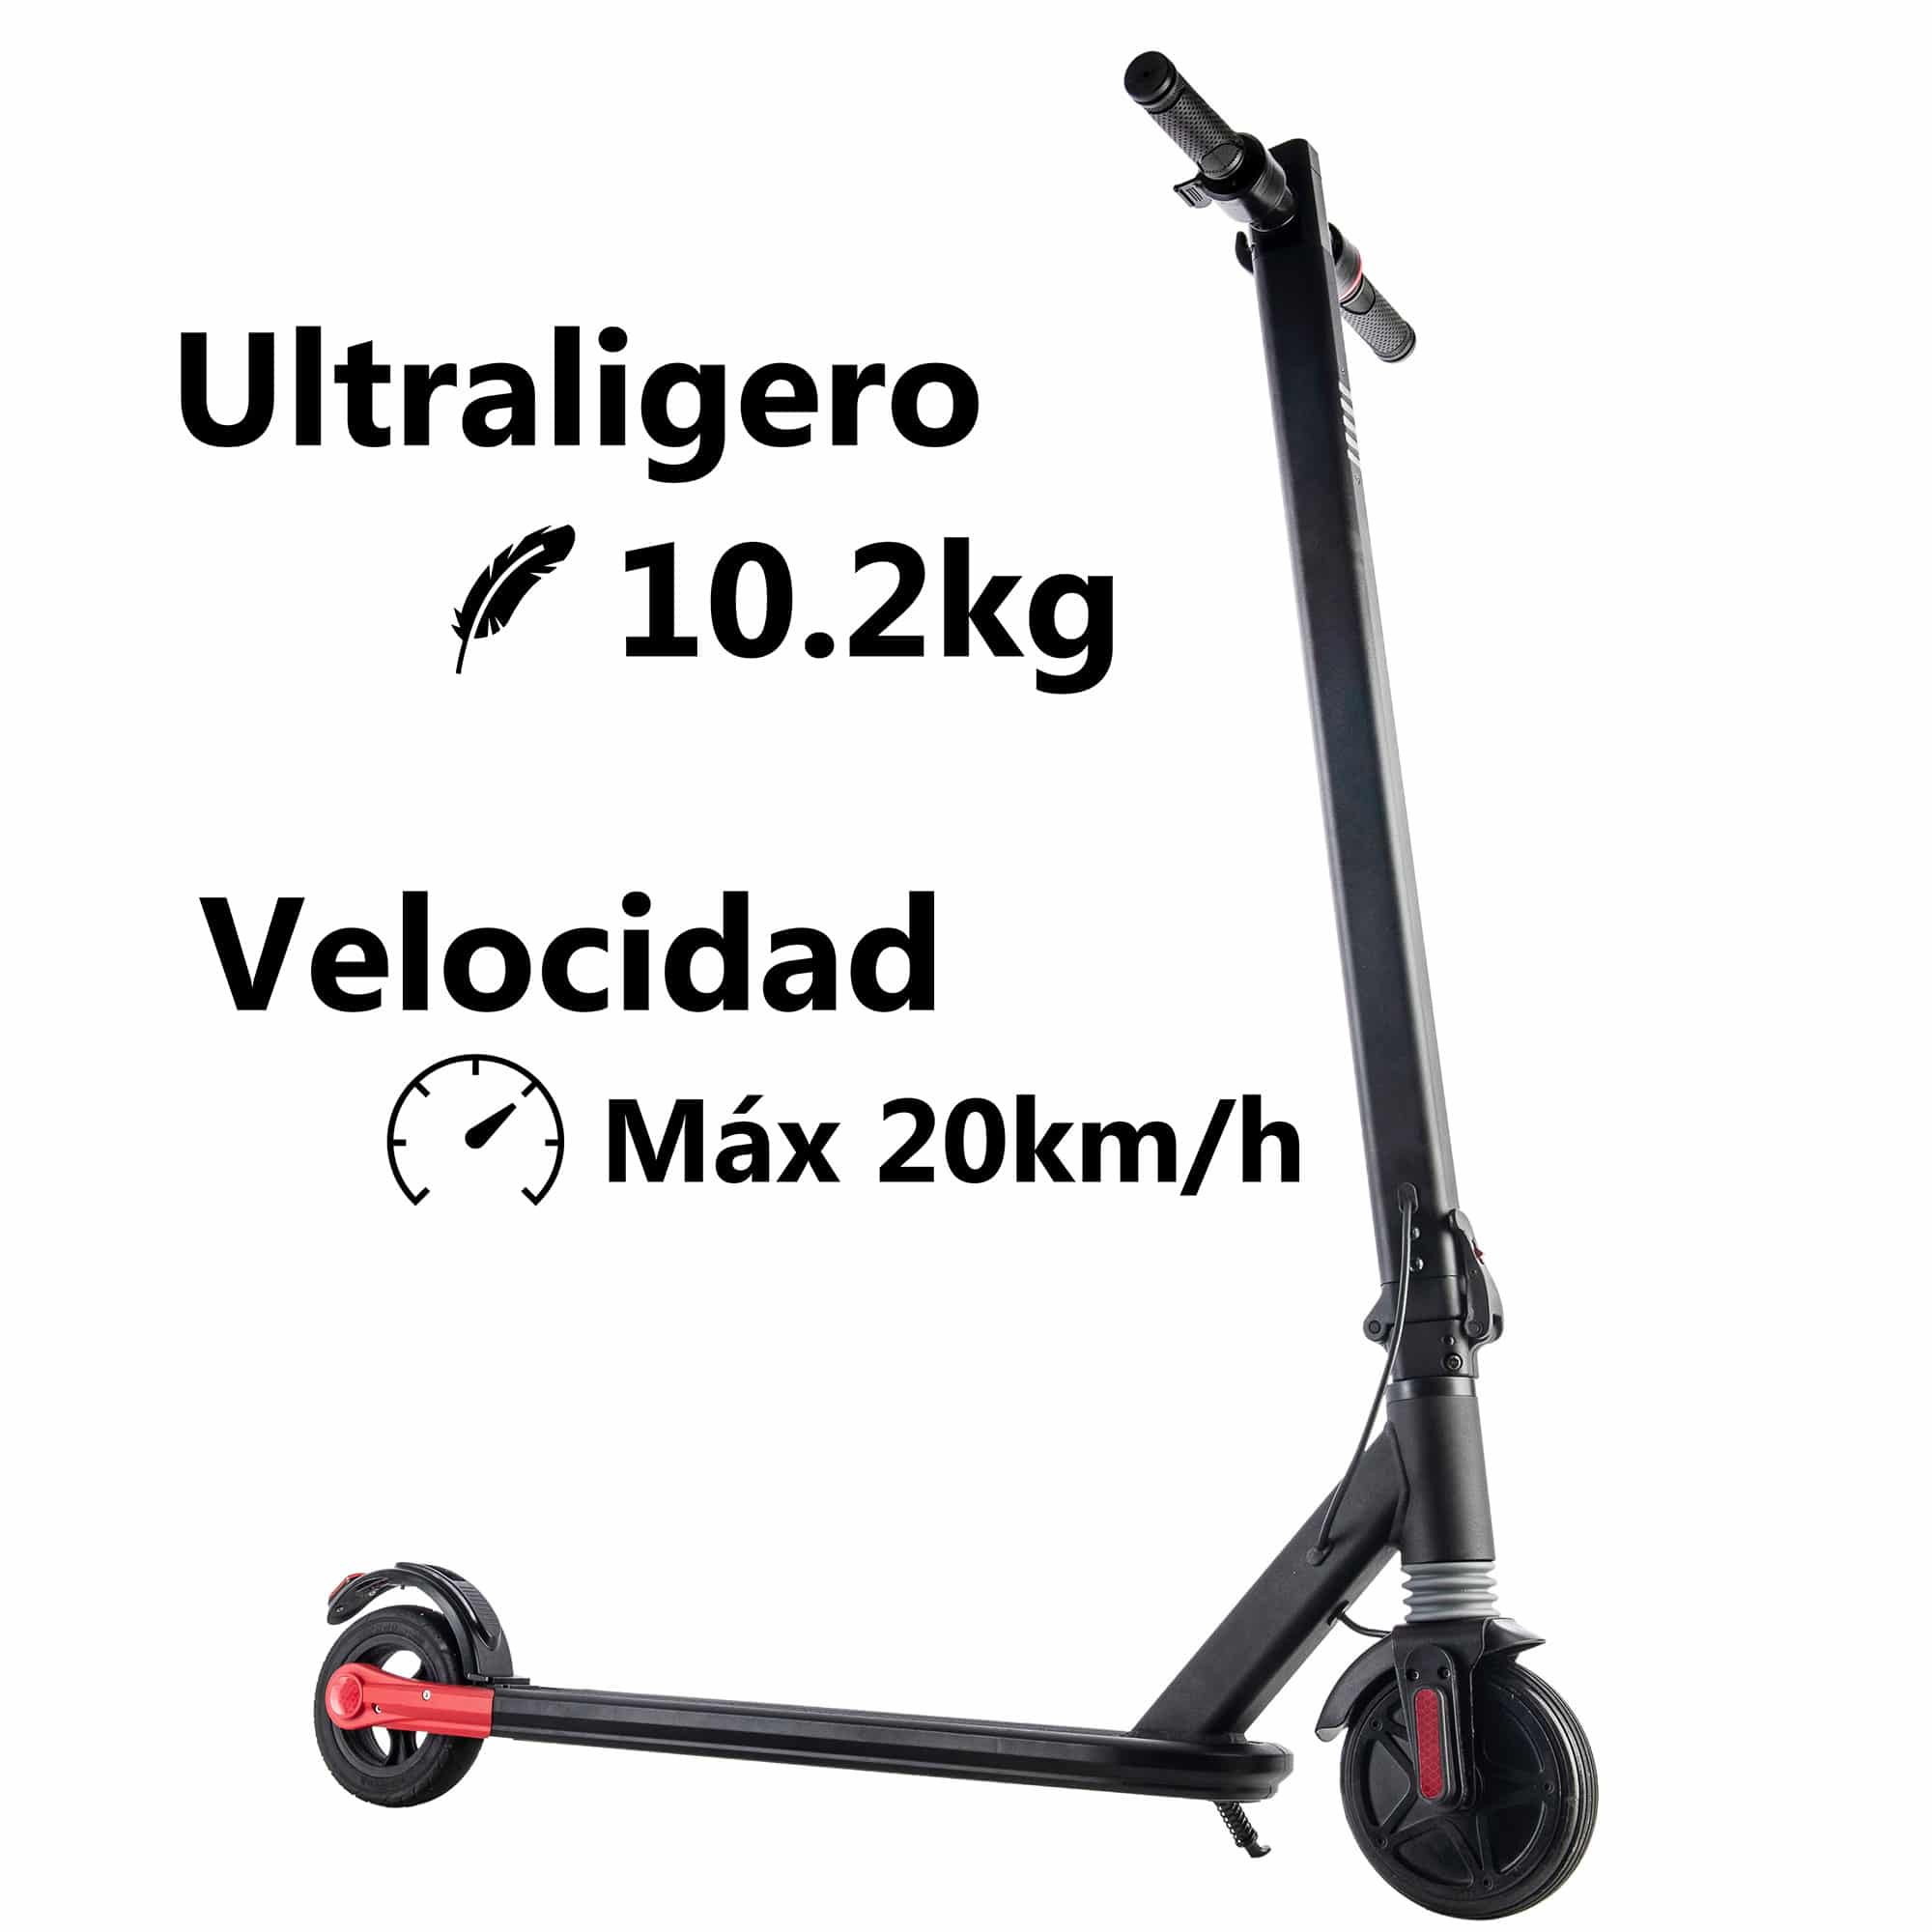 Ultralight electric scooter - Zwheel